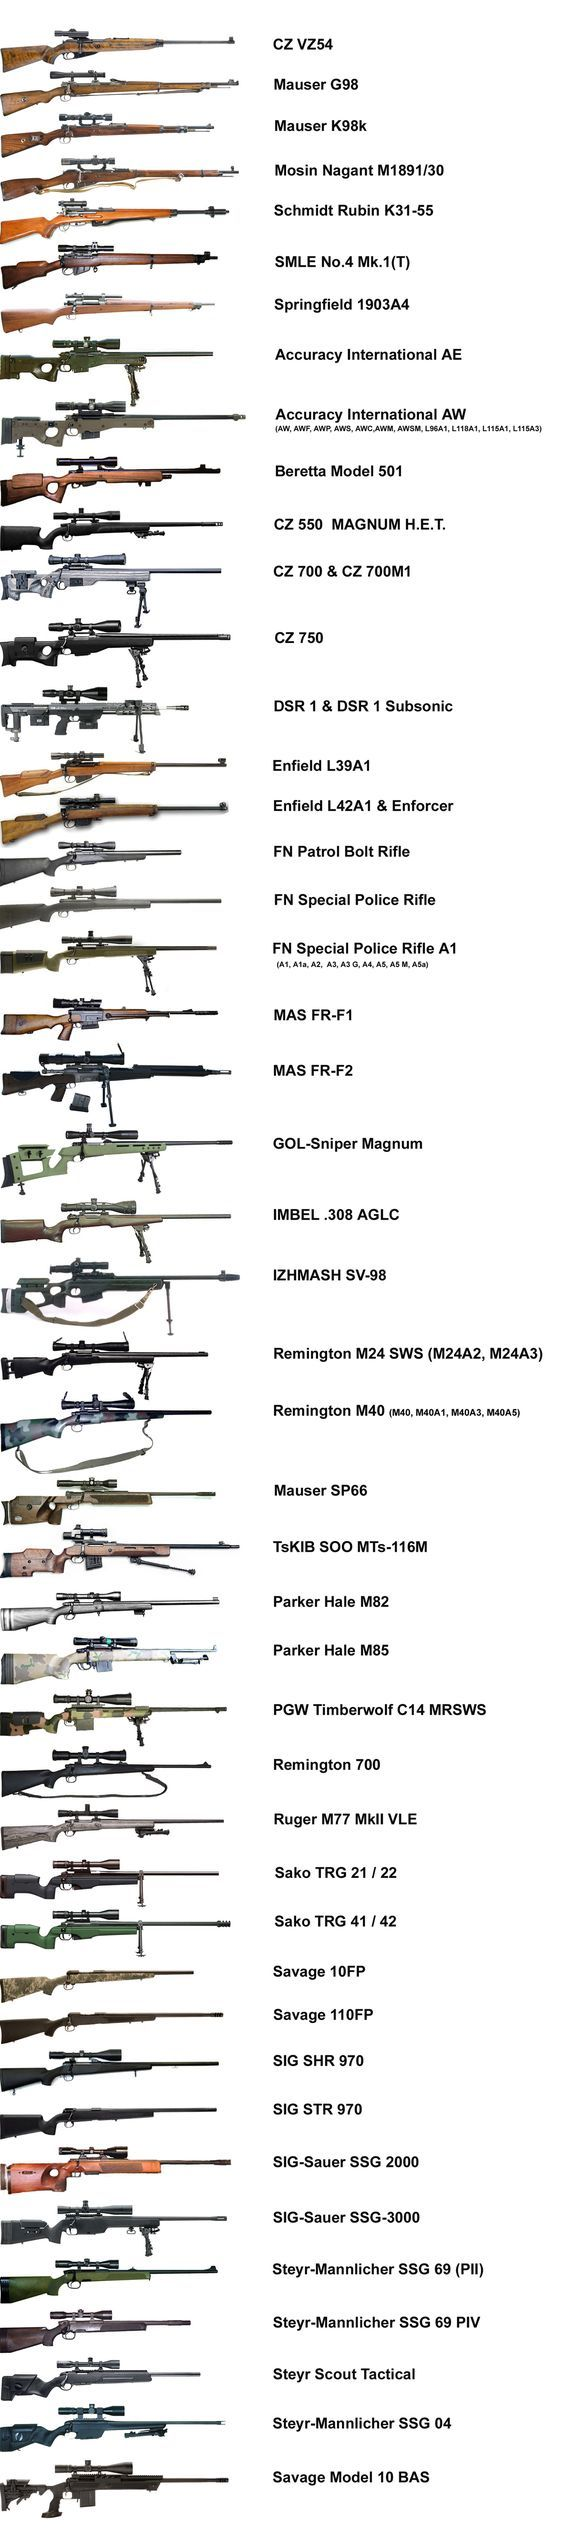 The Chart of Sniper Rifles @aegisgears